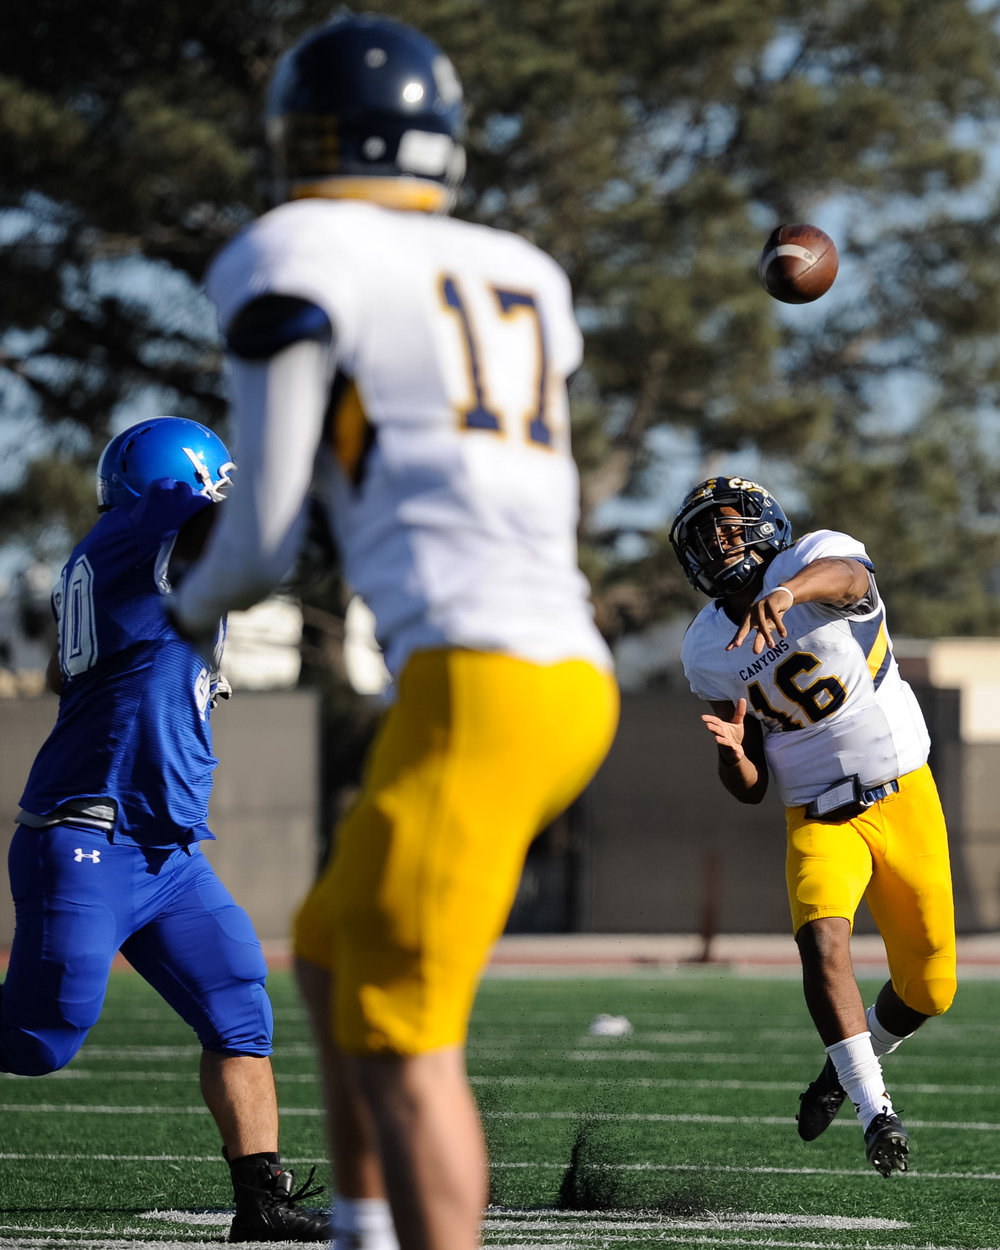 Quarterback Darryn Blackshere (16) of College of the Canyons  passes to wide receiver Hunter Schuessler (17). The Santa Monica College Corsairs lose their final home game 7-48 to the College of the Canyons Cougars and will play their final game of the season away at Moorpark on Saturday, November 11. The game was held at the Corsair Stadium at the Santa Monica College Main Campus in Santa Monica, Calif.. November 4, 2017. (Photo by: Justin Han/Corsair Staff)